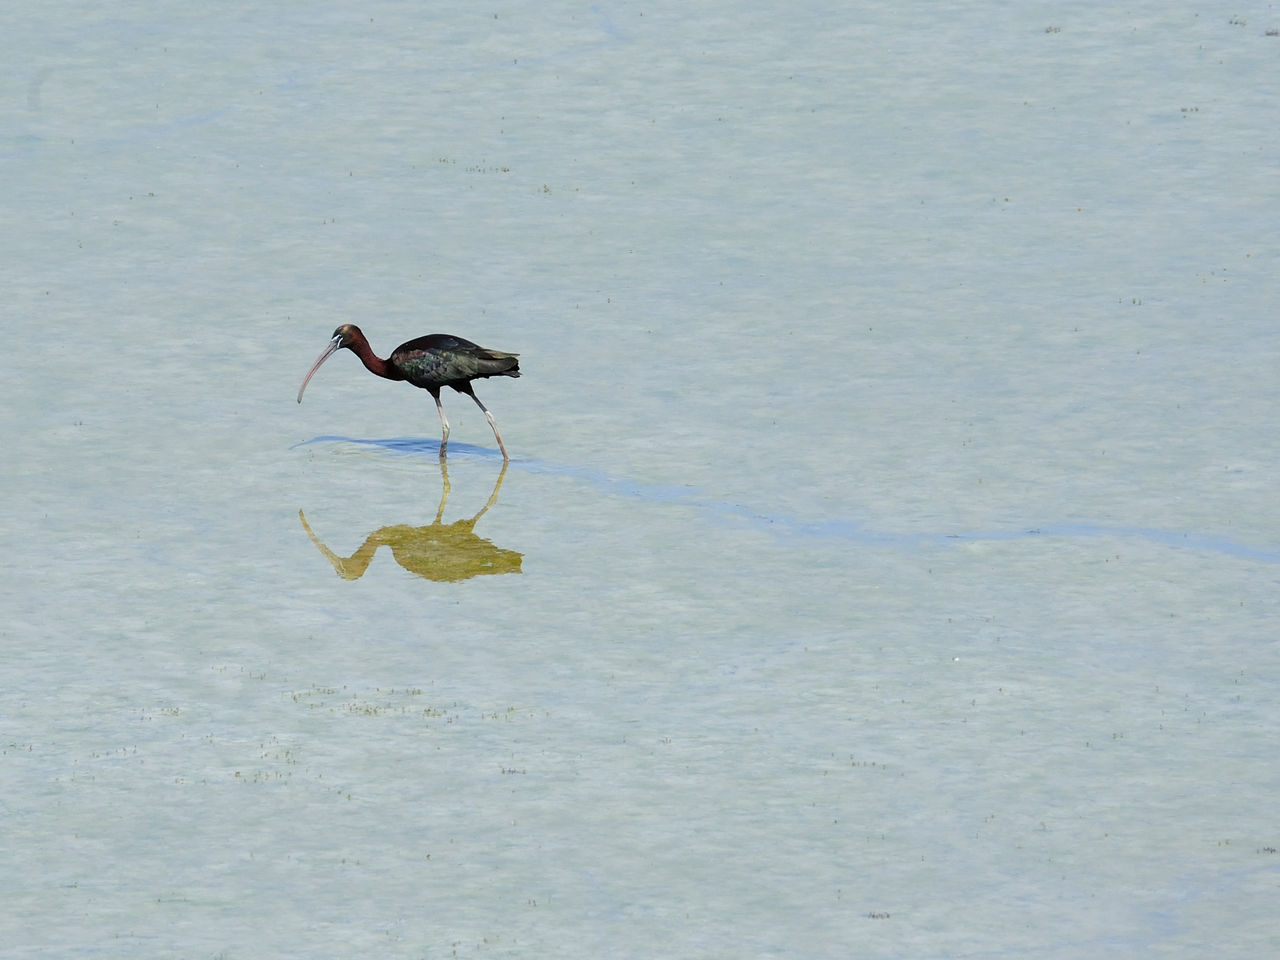 water, bird, animals in the wild, one animal, animal wildlife, no people, nature, animal themes, day, outdoors